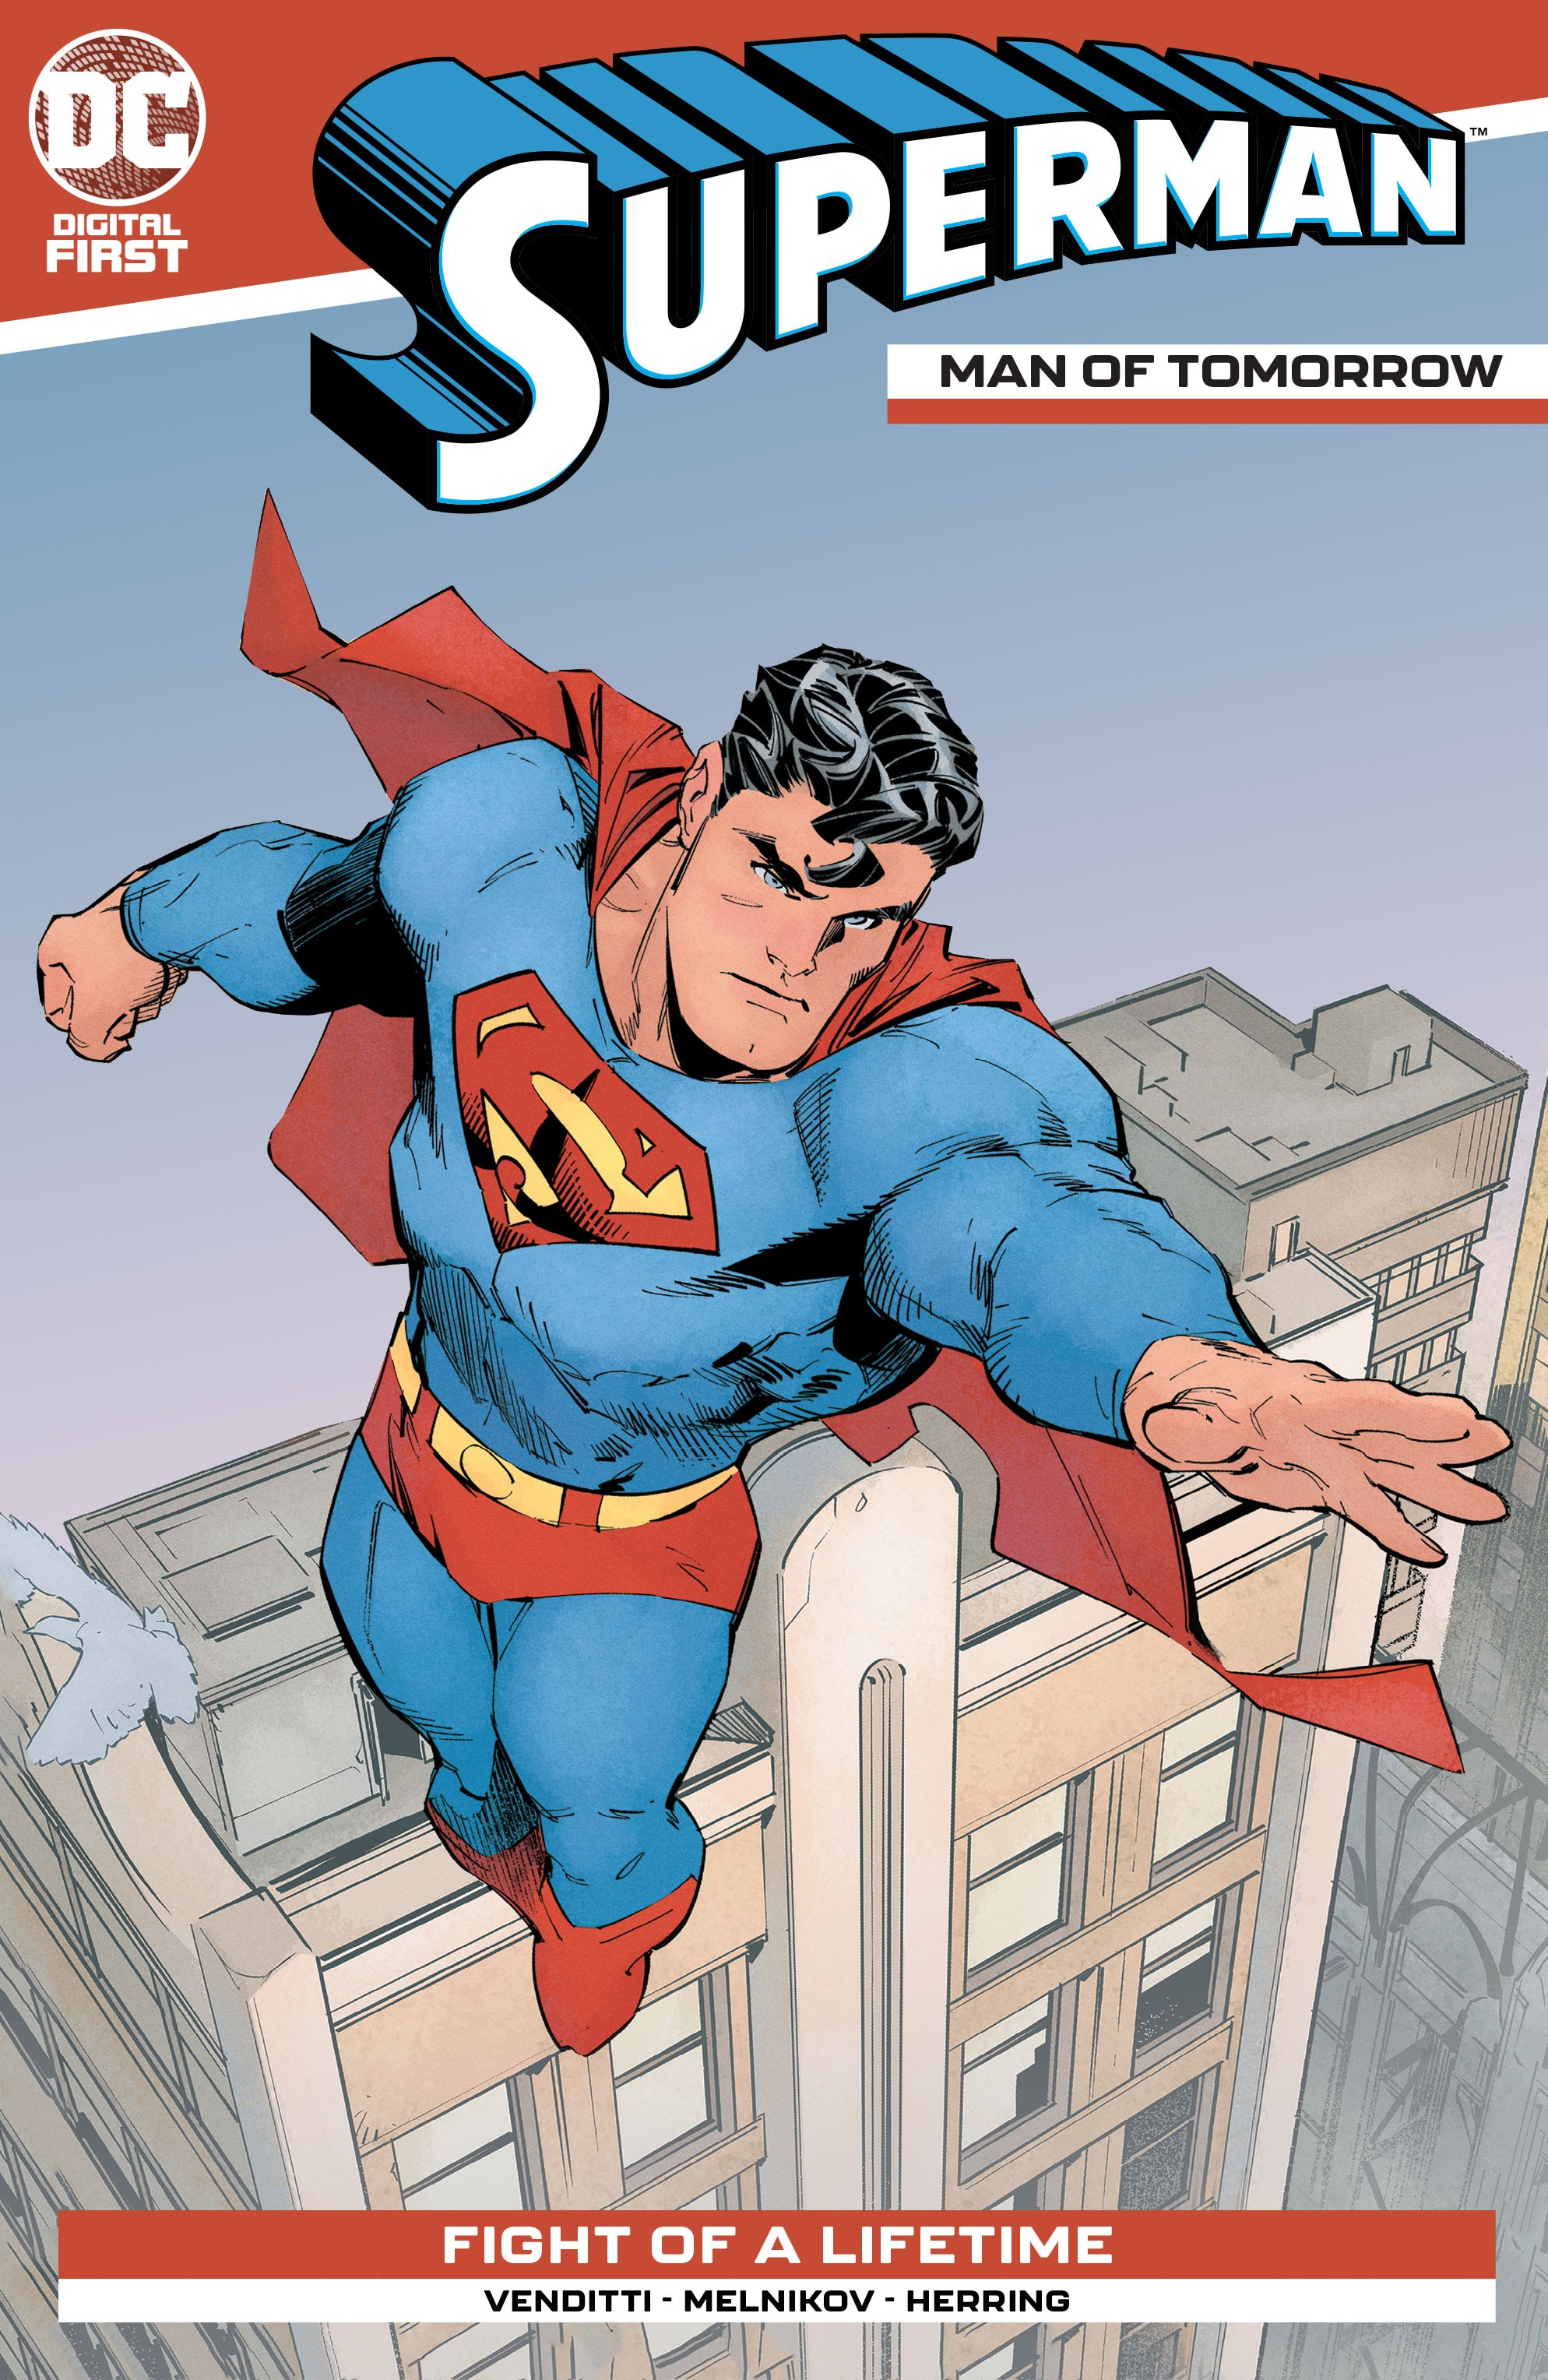 Superman: Man of Tomorrow Vol 1 11 (Digital)